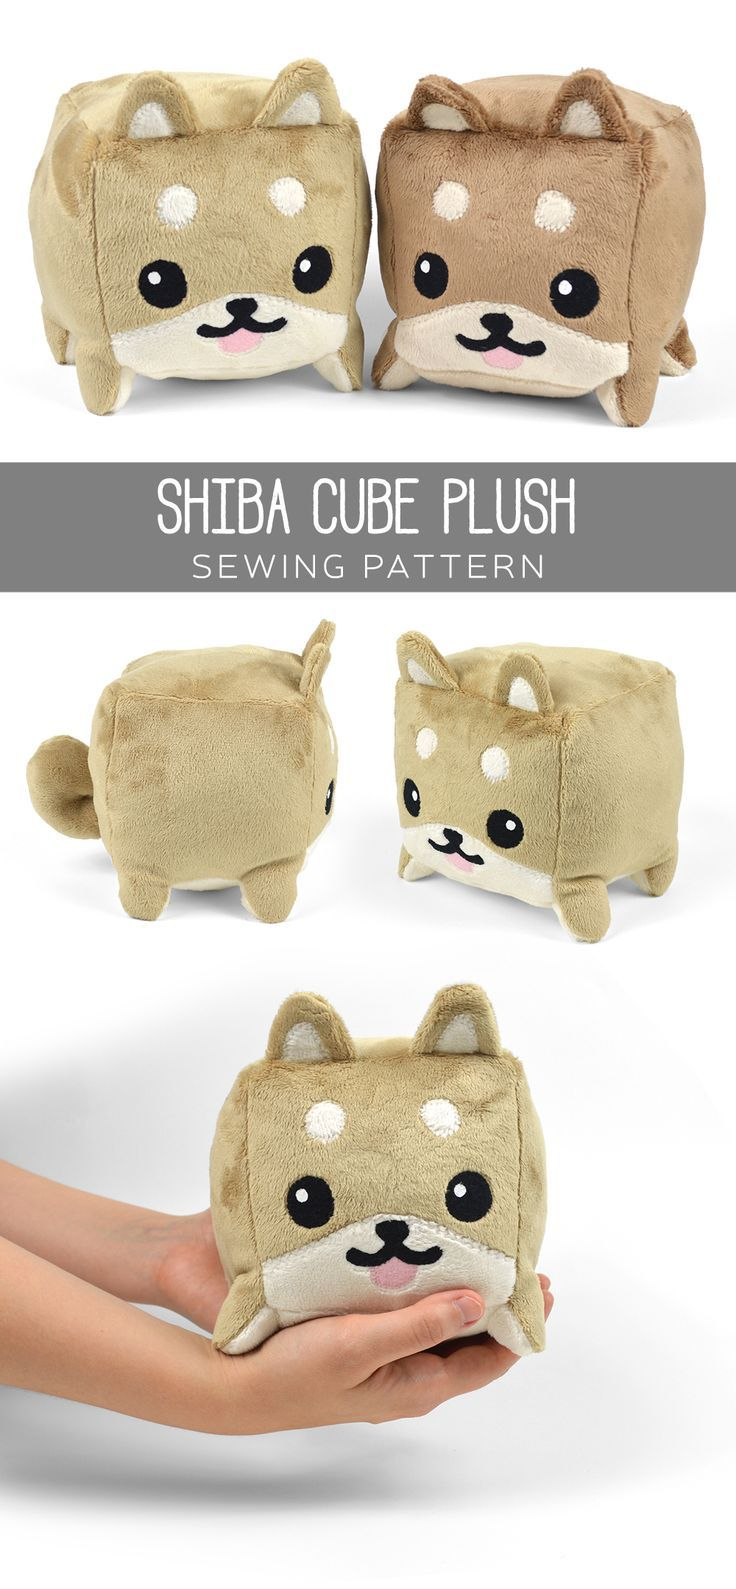 Free pattern download for this cute cube plush softie! | Creative ...